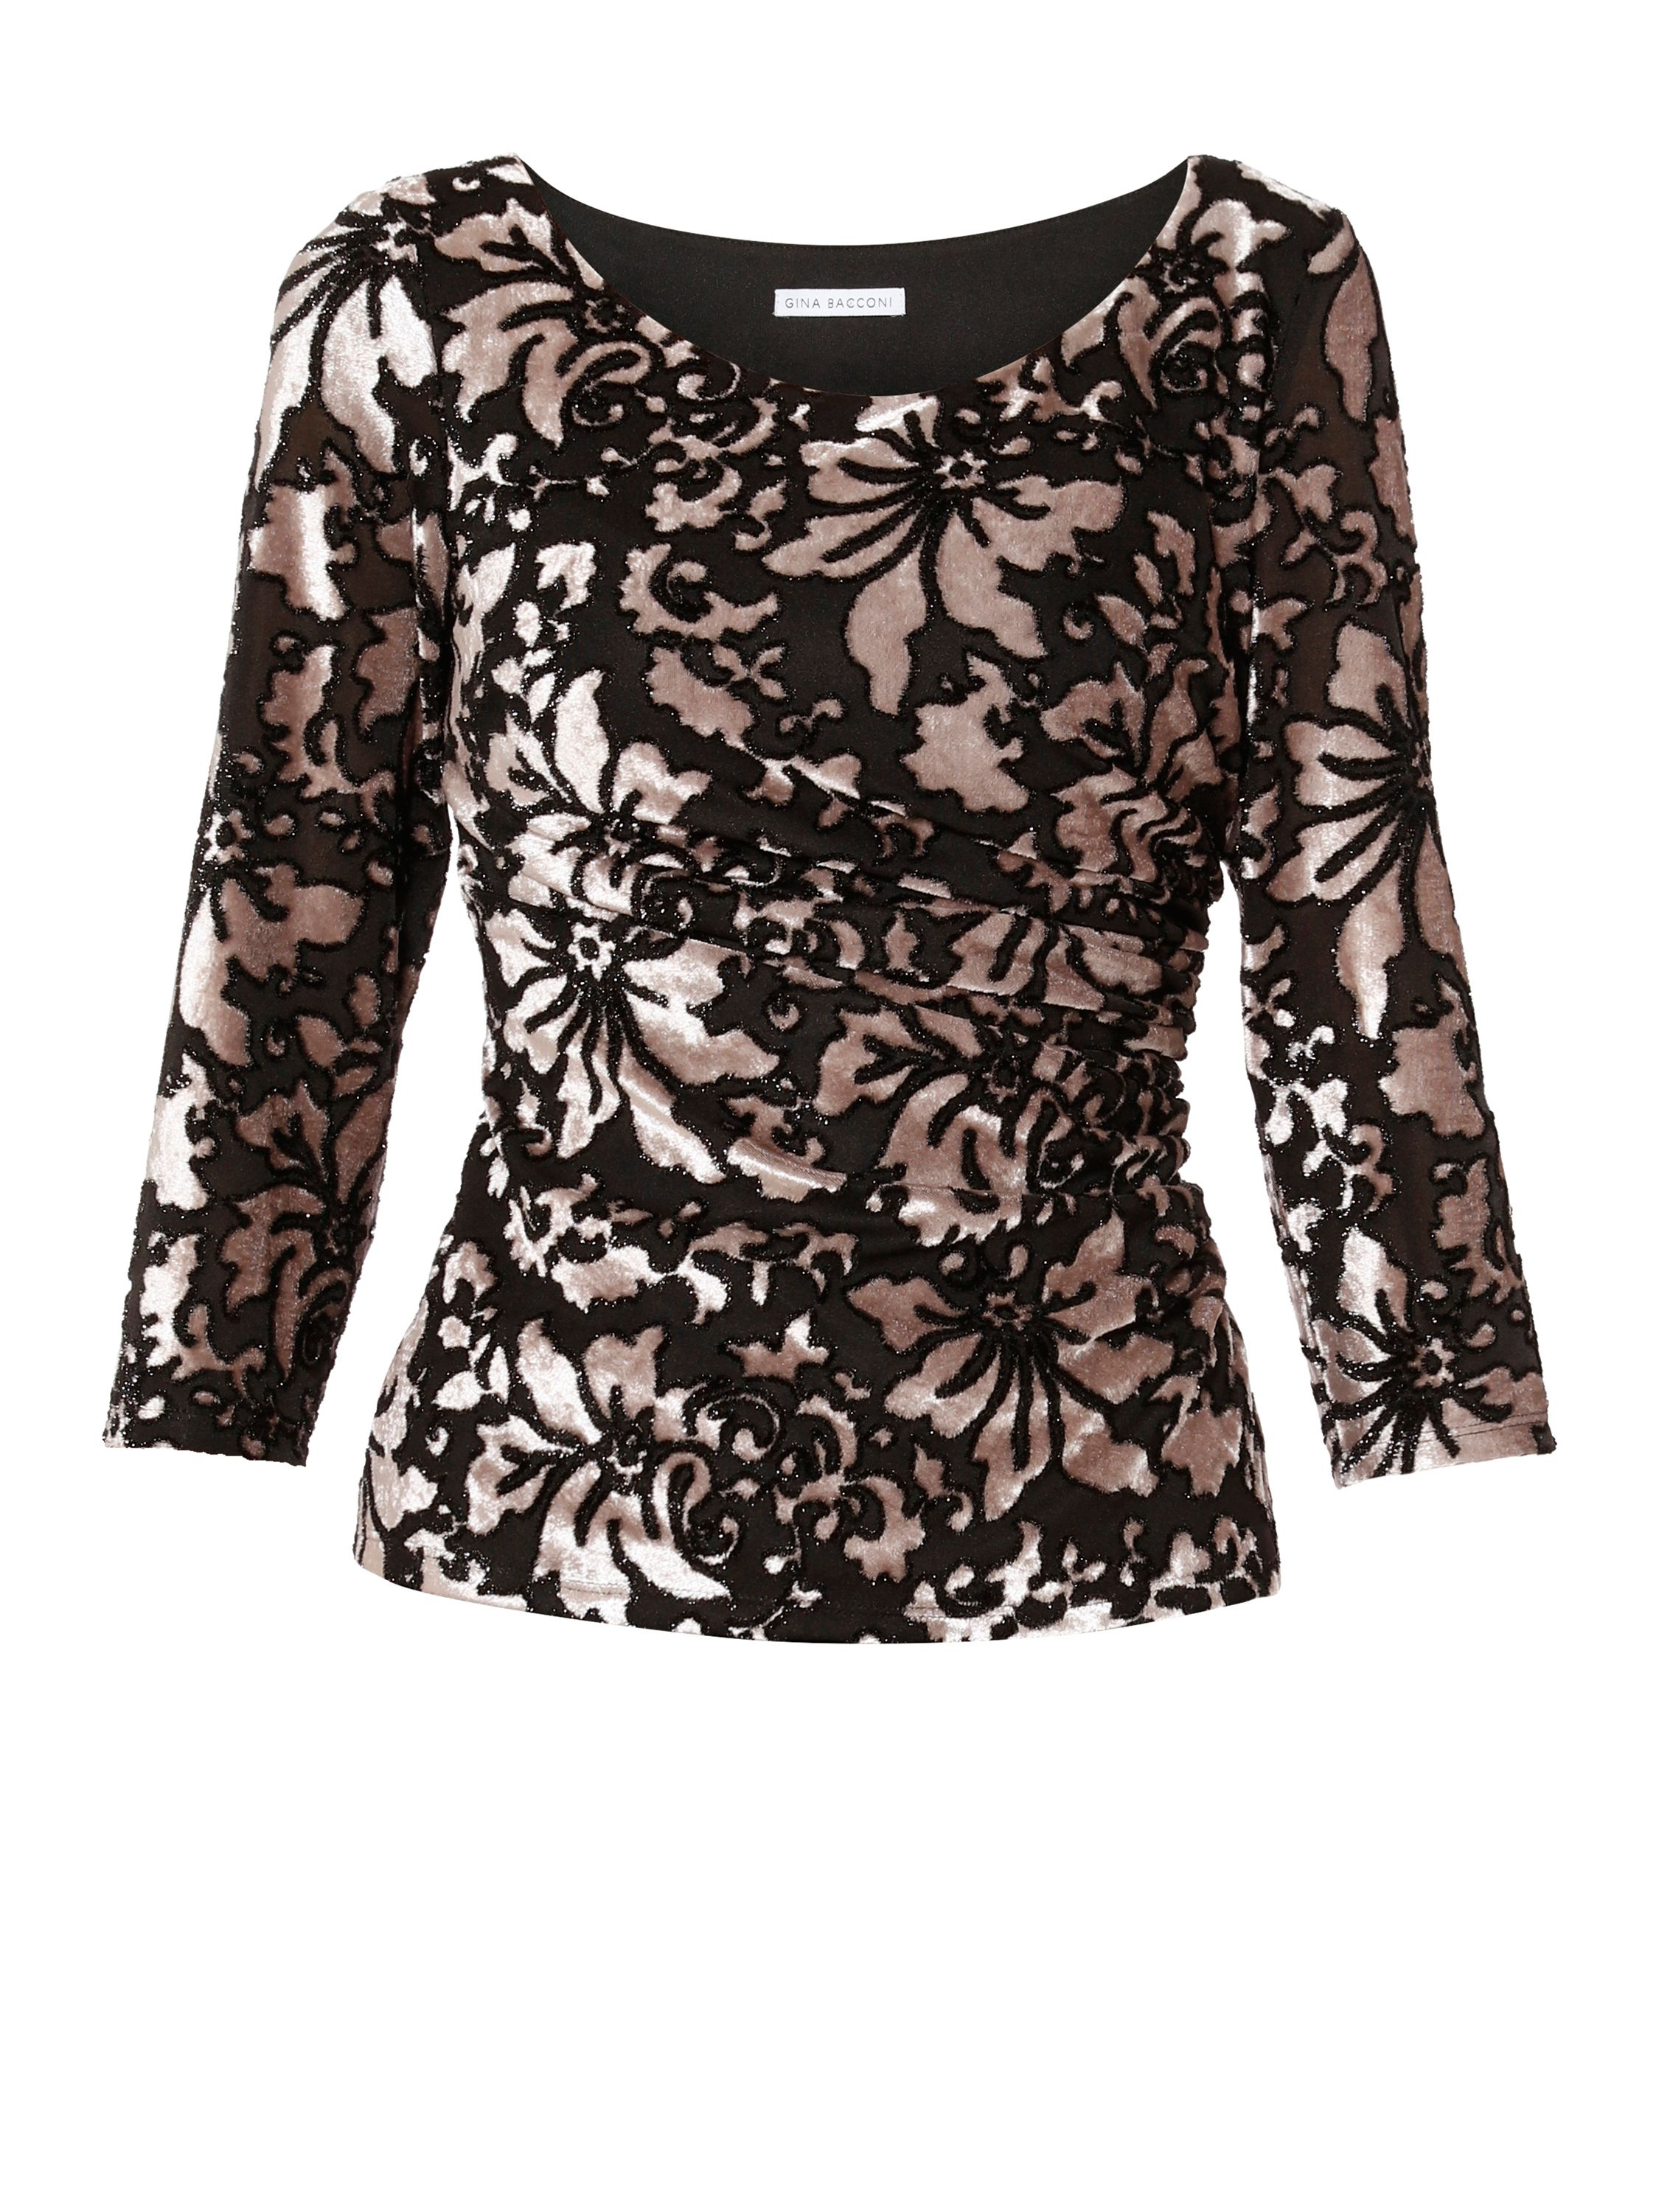 Gina Bacconi Margaret Floral Velvet Top, Multi-Coloured